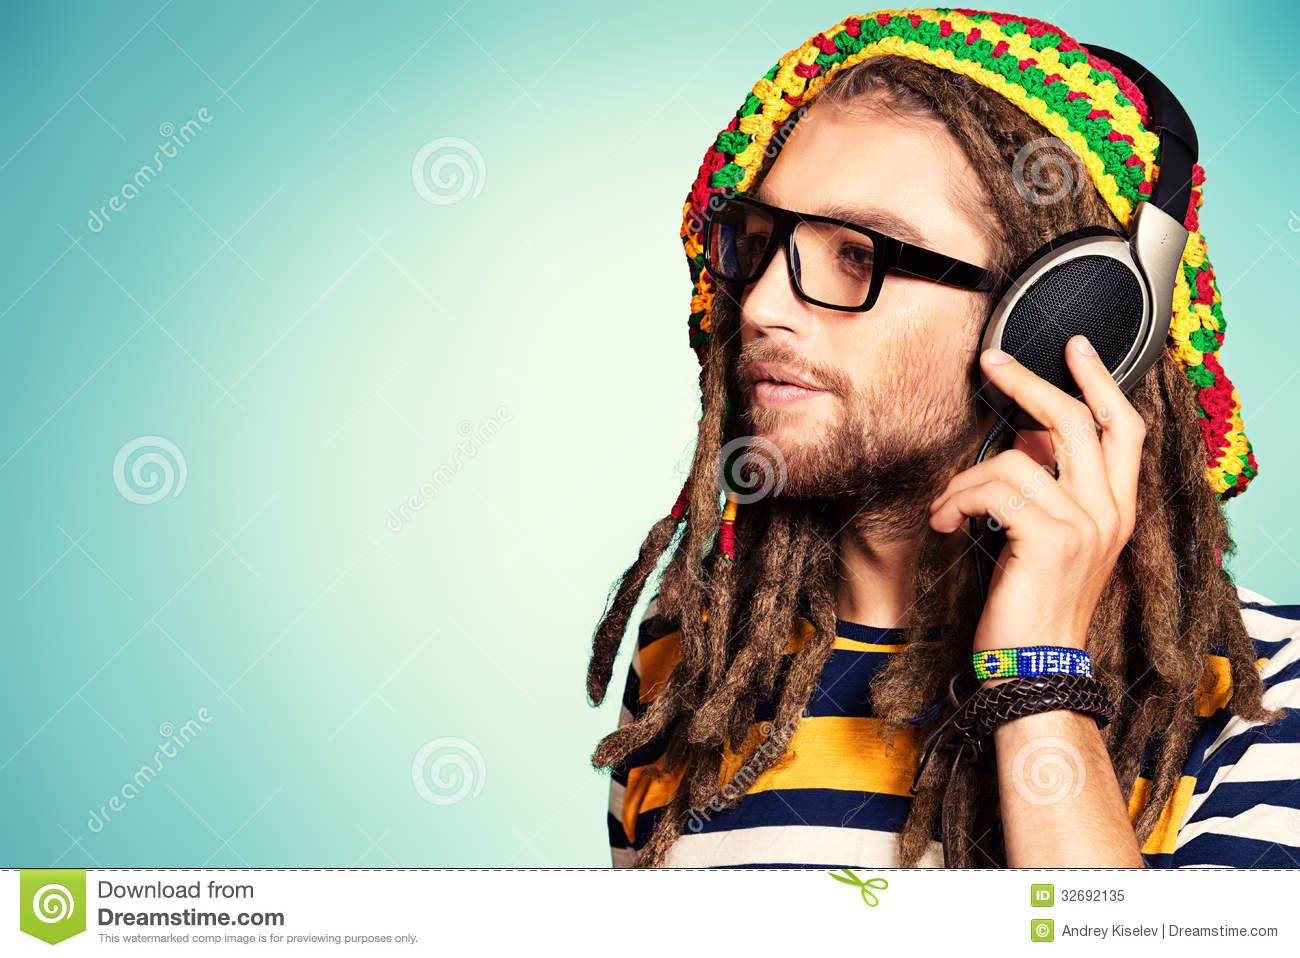 """rastafarian research paper As lij tafari, and later known as ras tafari, from which the term """"rastafari""""  """" multicultural society/classroom library"""", articles on rastafari, and a study on race ."""